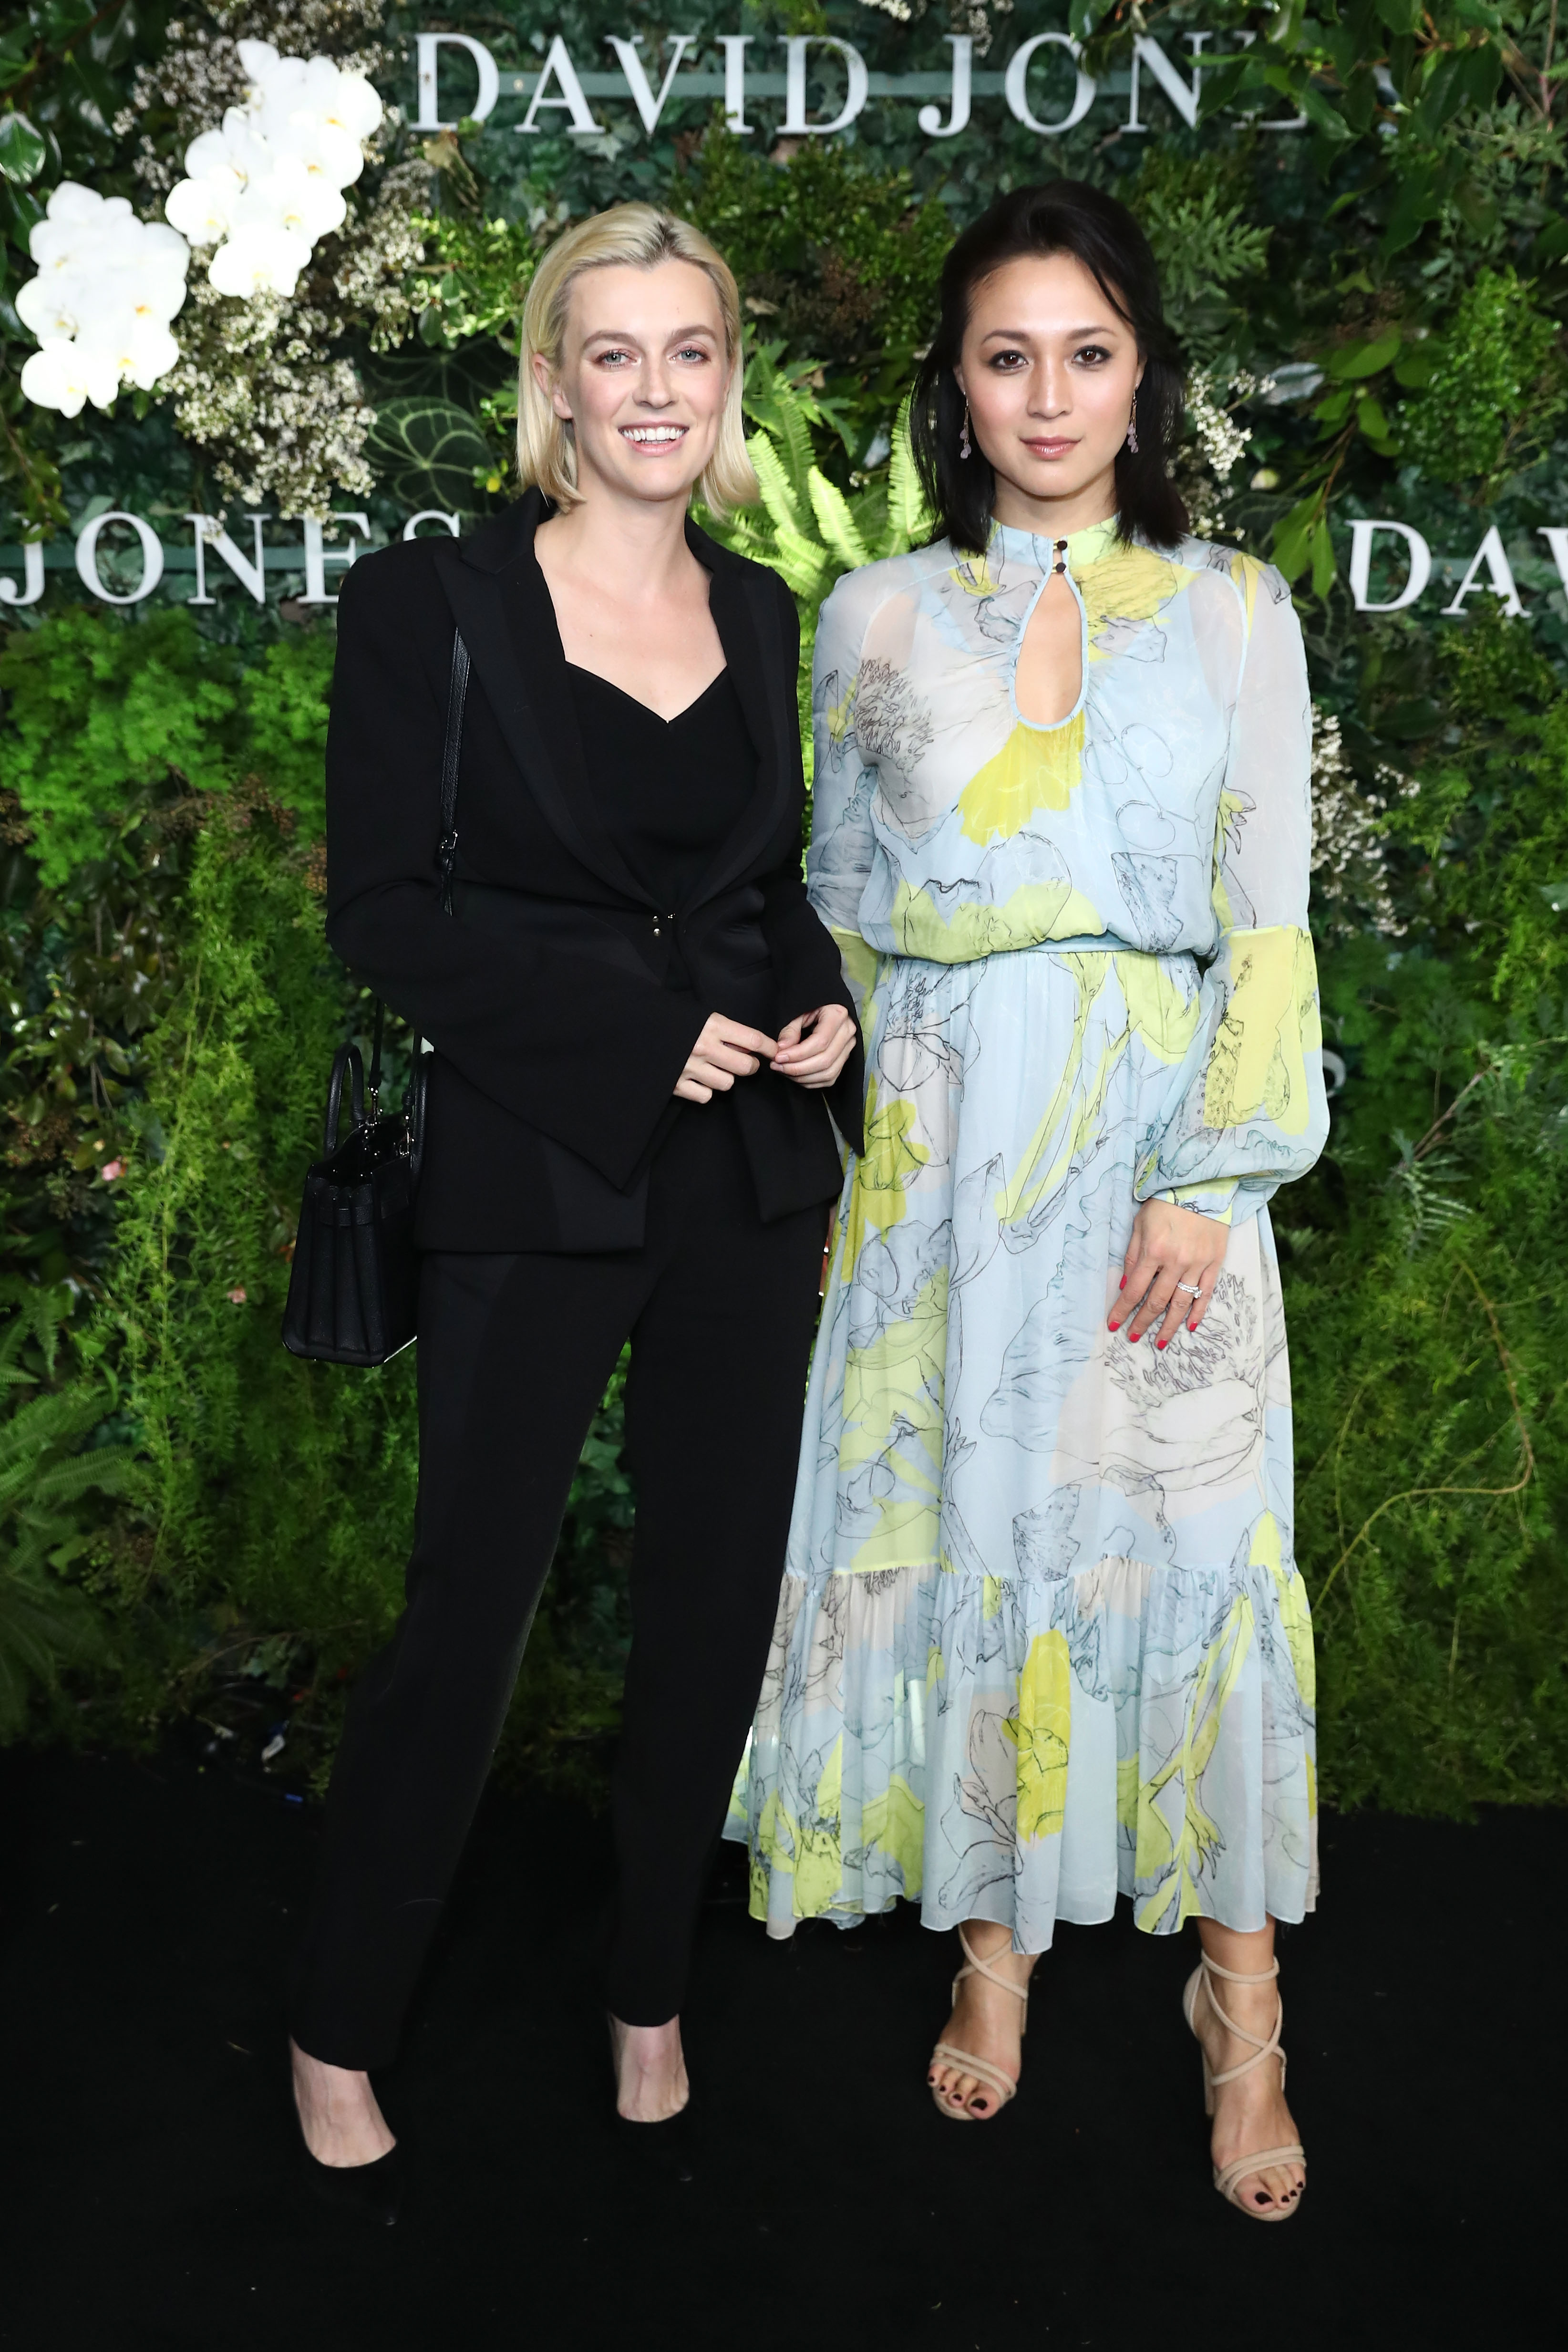 SYDNEY, AUSTRALIA - AUGUST 08: Gracie Otto and Grace Wang attend the David Jones Spring Summer 18 Collections Launch at Fox Studios on August 8, 2018 in Sydney, Australia.  (Photo by Mark Metcalfe/Getty Images for David Jones) *** Local Caption *** Gracie Otto; Grace Wang